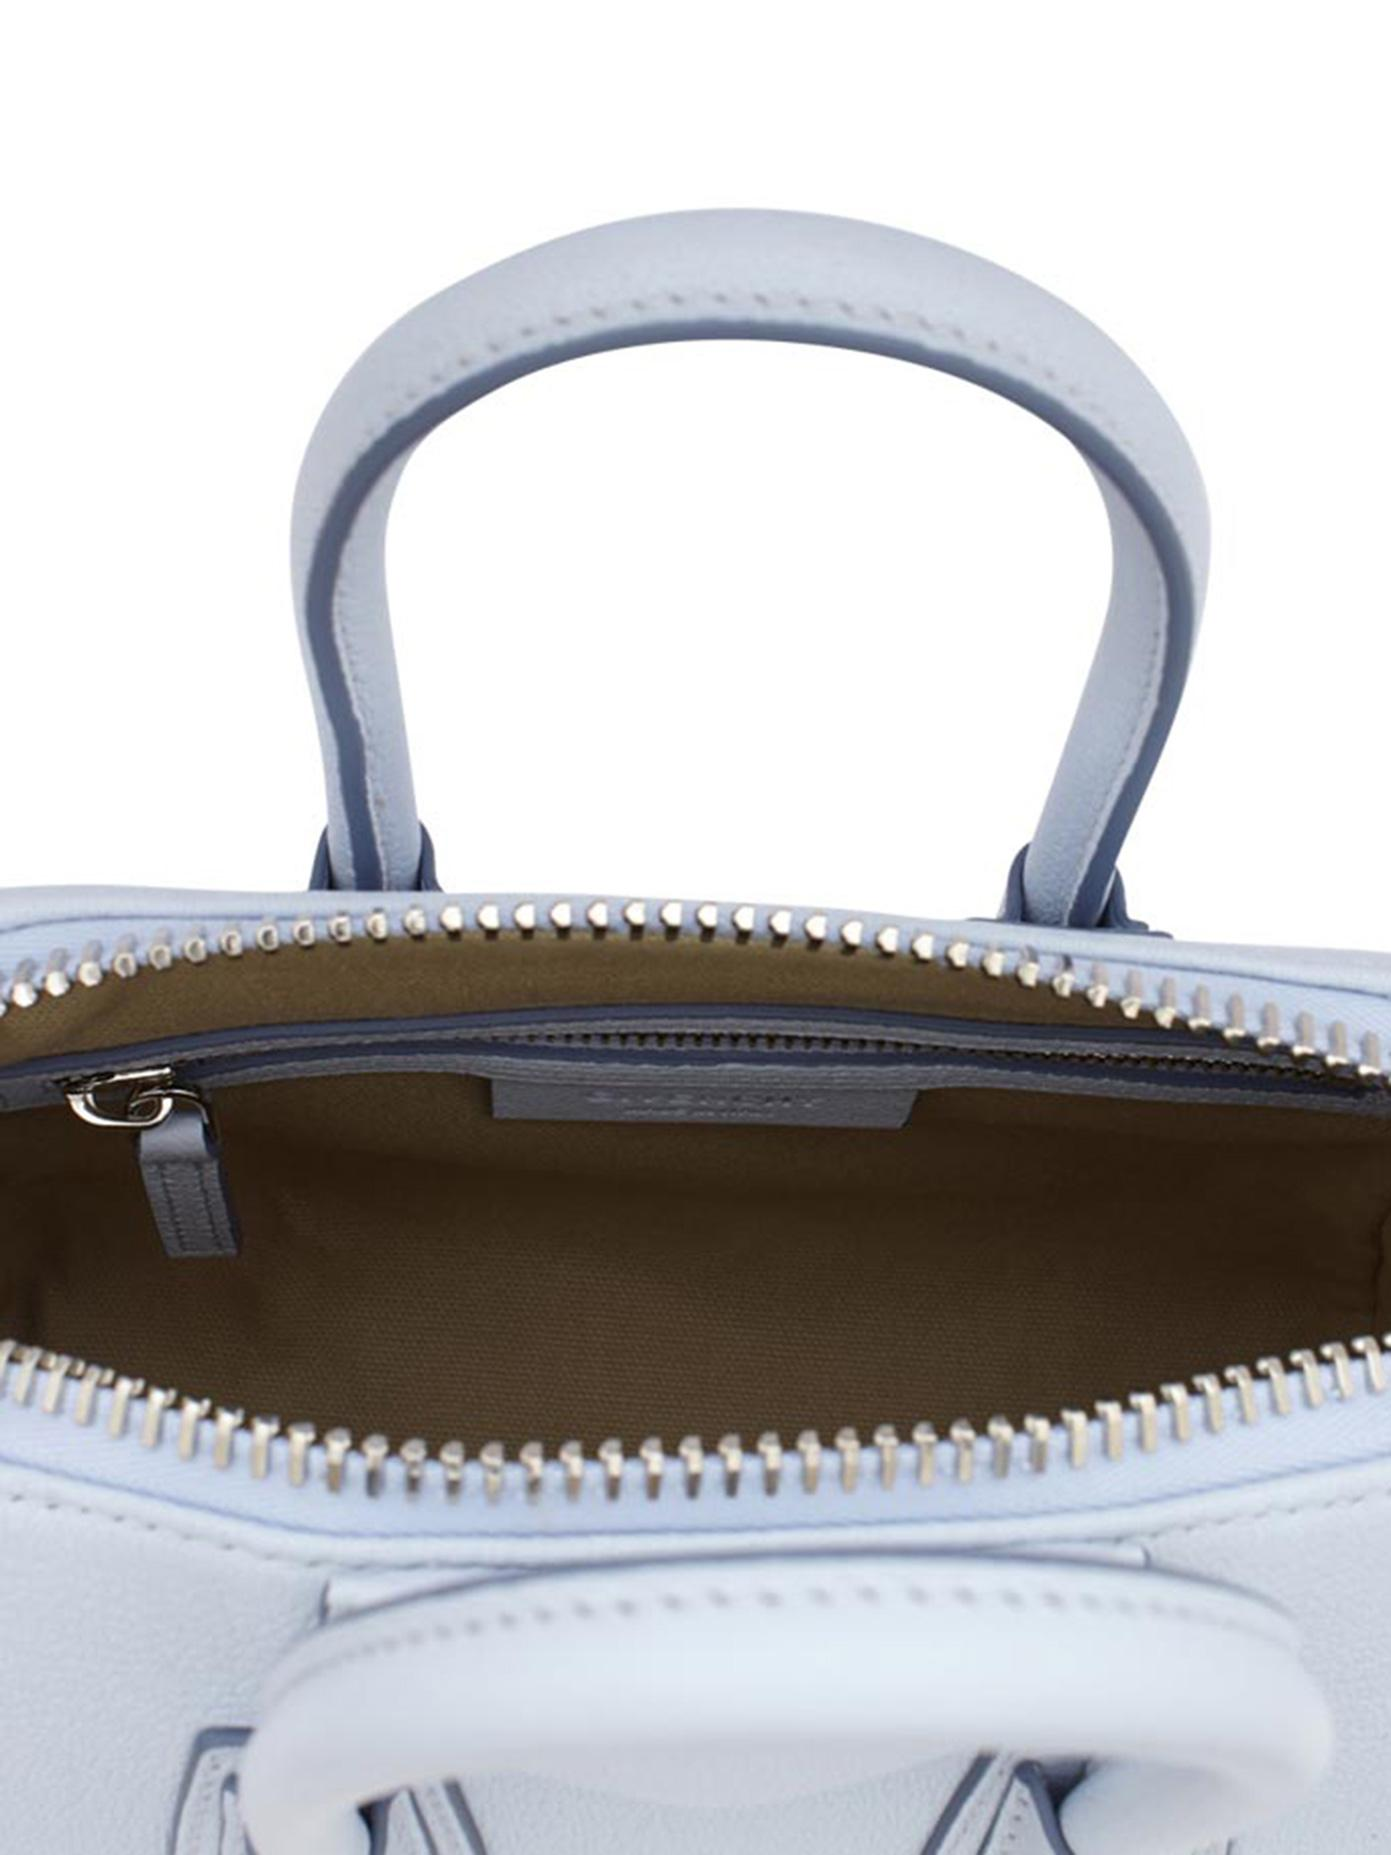 ... Lyst - Givenchy Antigona Mini Leather Satchel in Blue new arrival f8ab1  f00a6 ... 84b6e4bf10